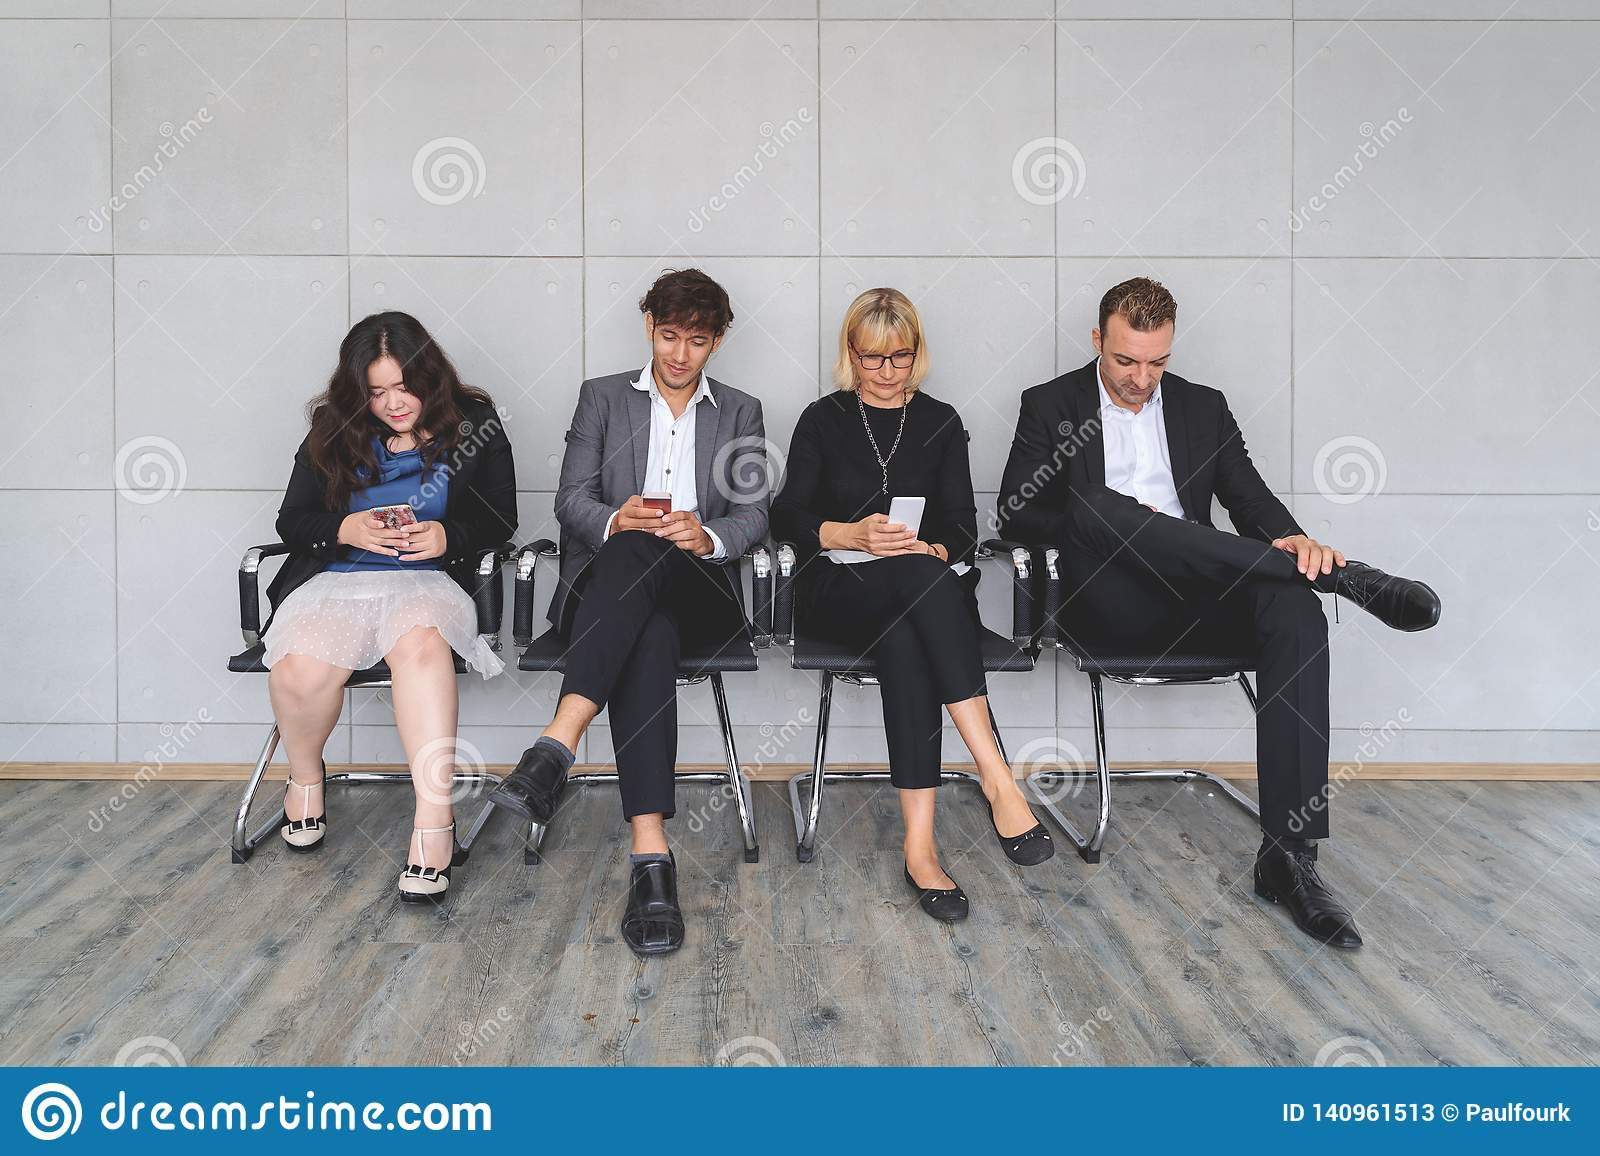 Multiethnic work applicants busy using laptops and smartphones preparing for recruiting talk, diverse job candidates sit in queue